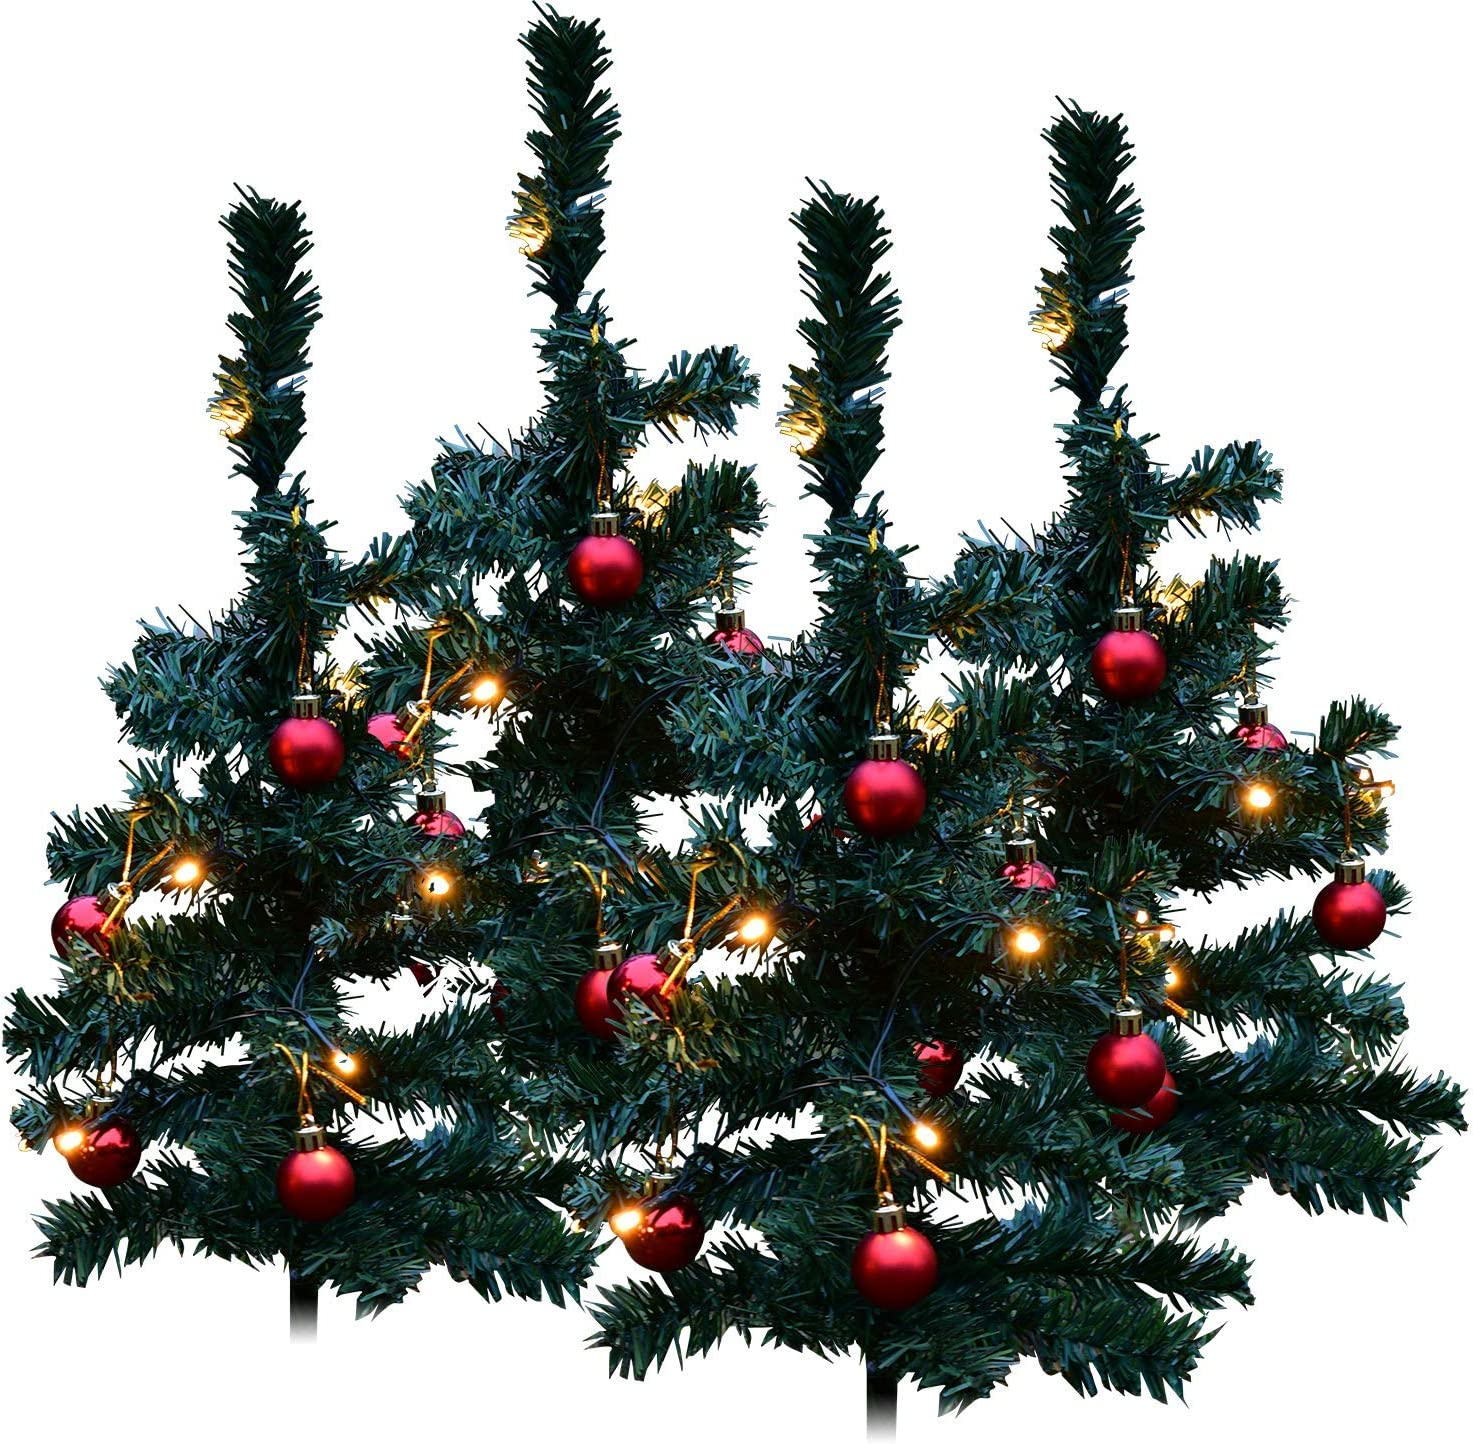 Outdoor Christmas Trees | Christmas Tree Pre-Lit Yard Decorations [Set of 4] Pathway with Timer Operated Led Lights | Includes Bonus Christmas Decal